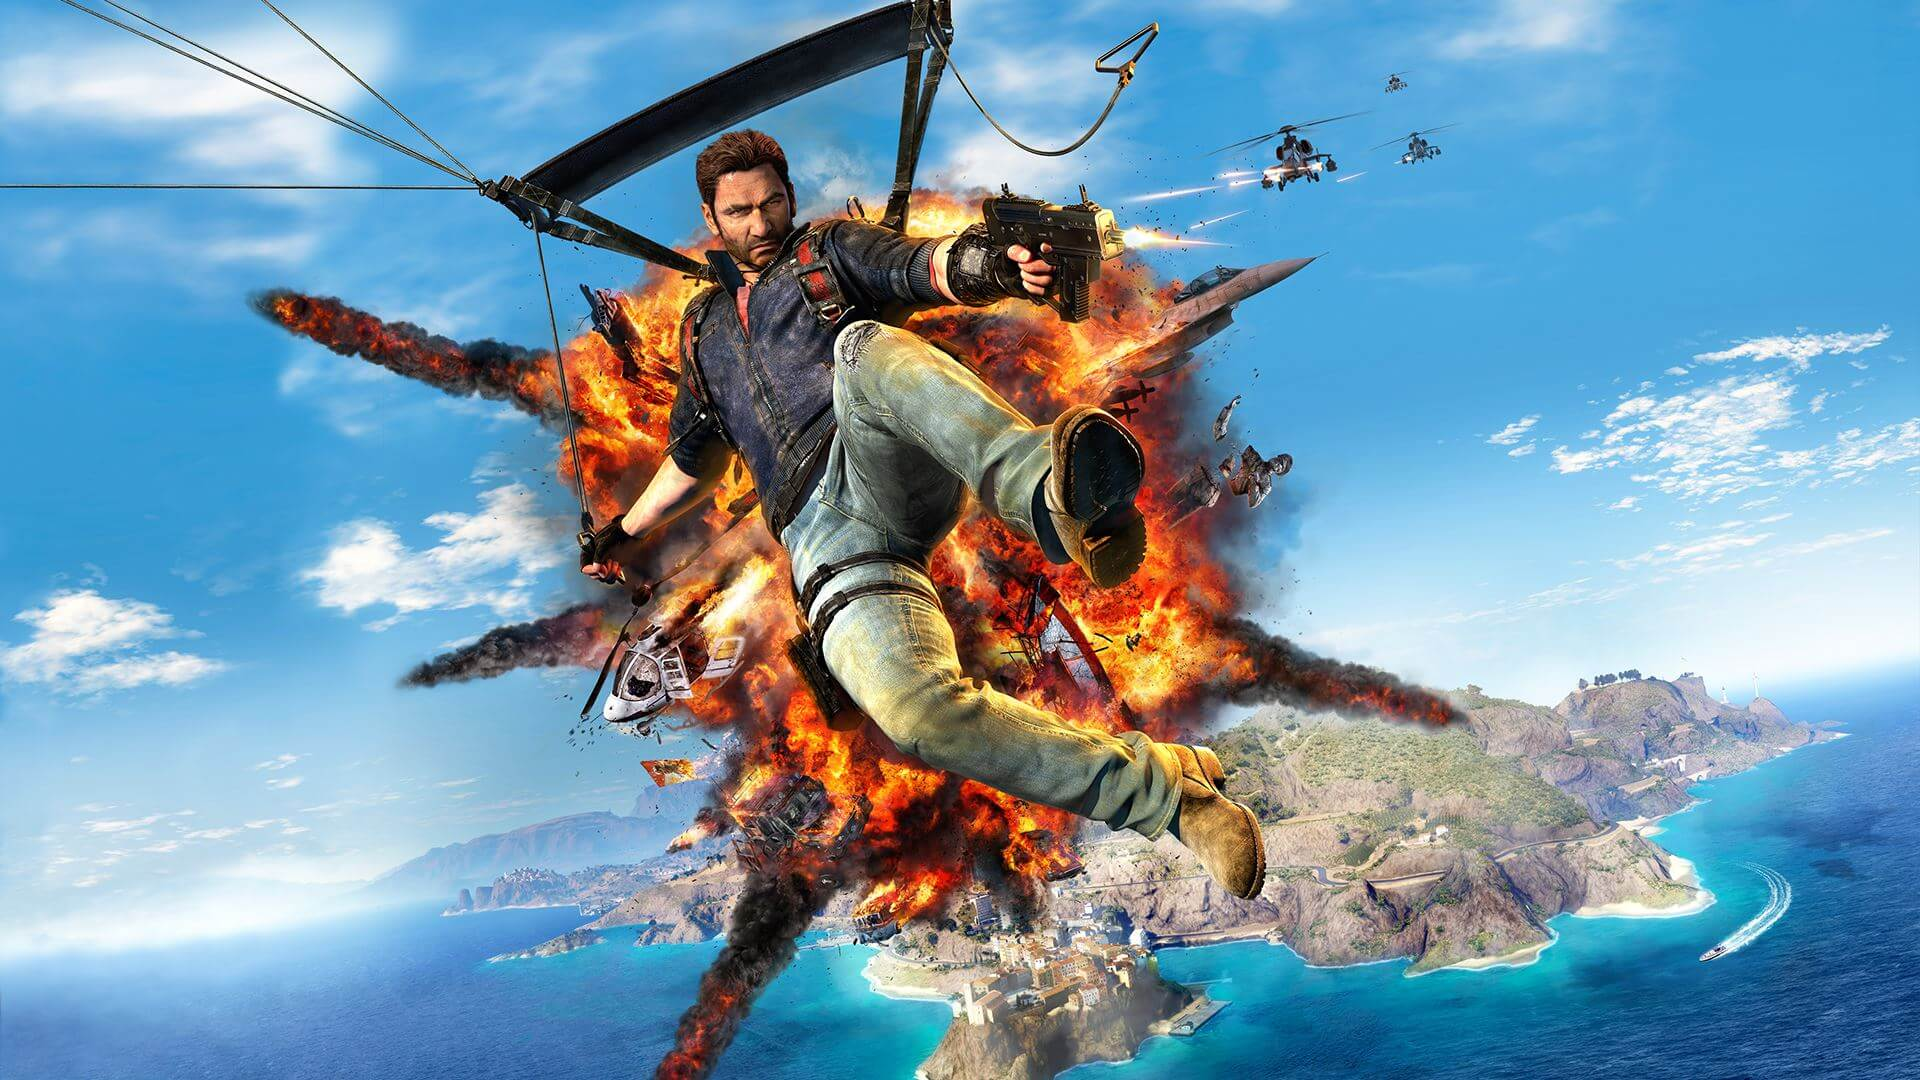 Win An Island Courtesy Of Just Cause 3